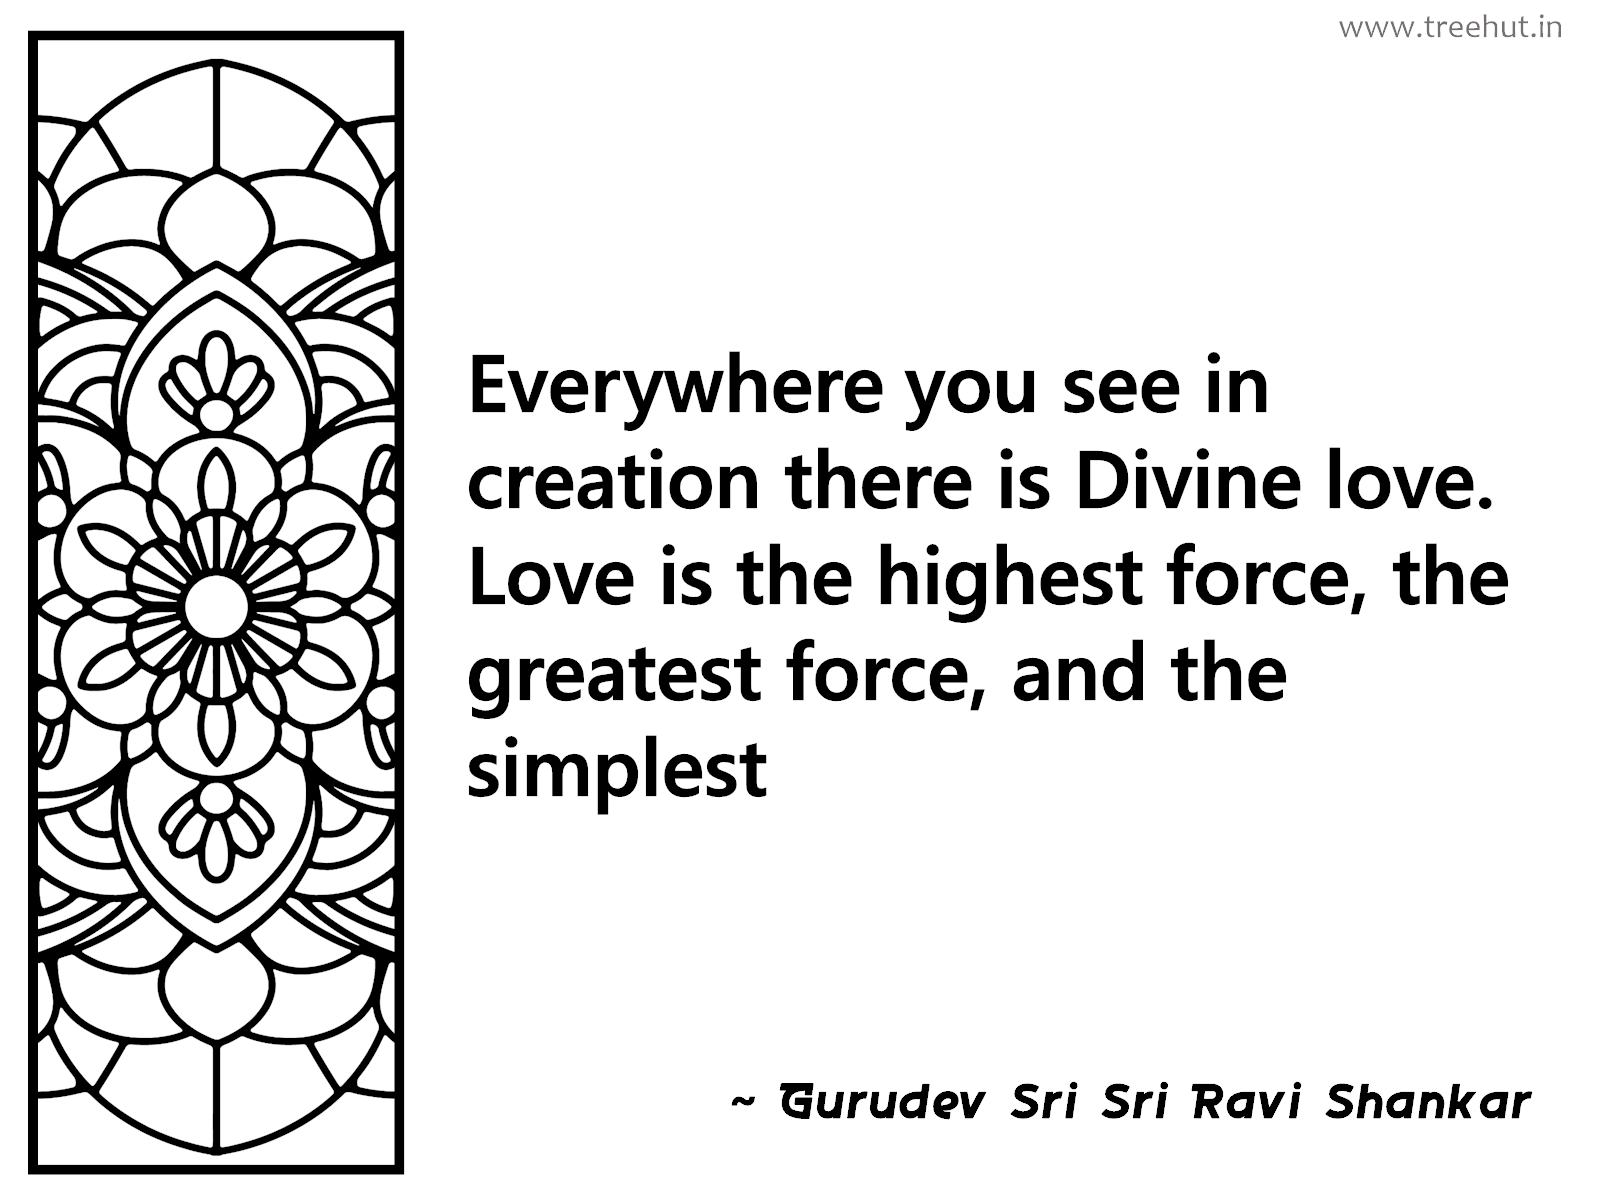 Everywhere you see in creation there is Divine love. Love is the highest force, the greatest force, and the simplest Inspirational Quote by Gurudev Sri Sri Ravi Shankar, coloring pages